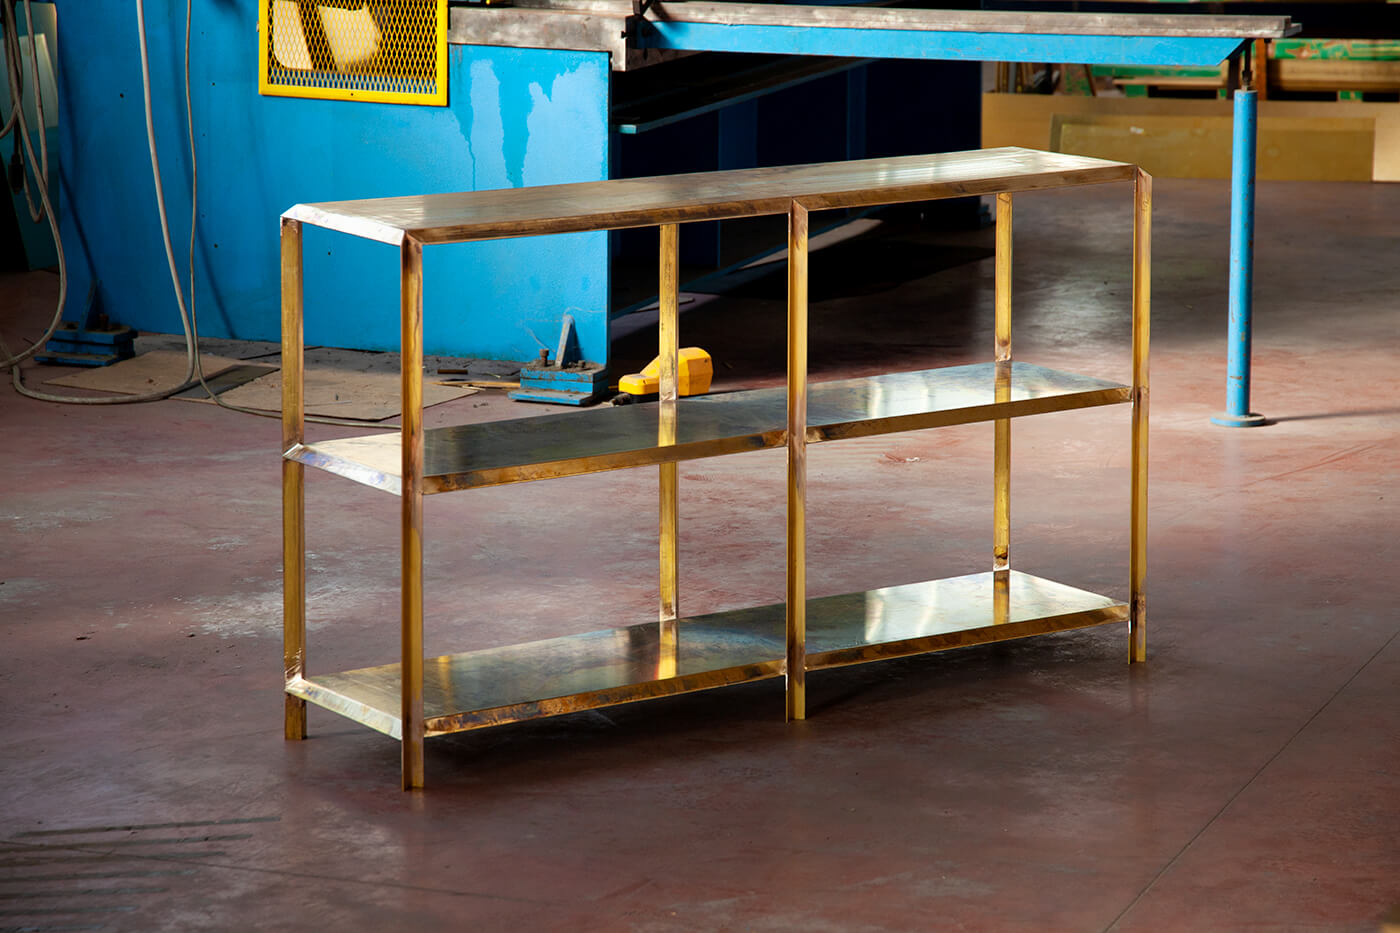 Marco Campardo Elle Collection Brass Console Wallpaper Design Awards winner for Seeds London Gallery work in progress